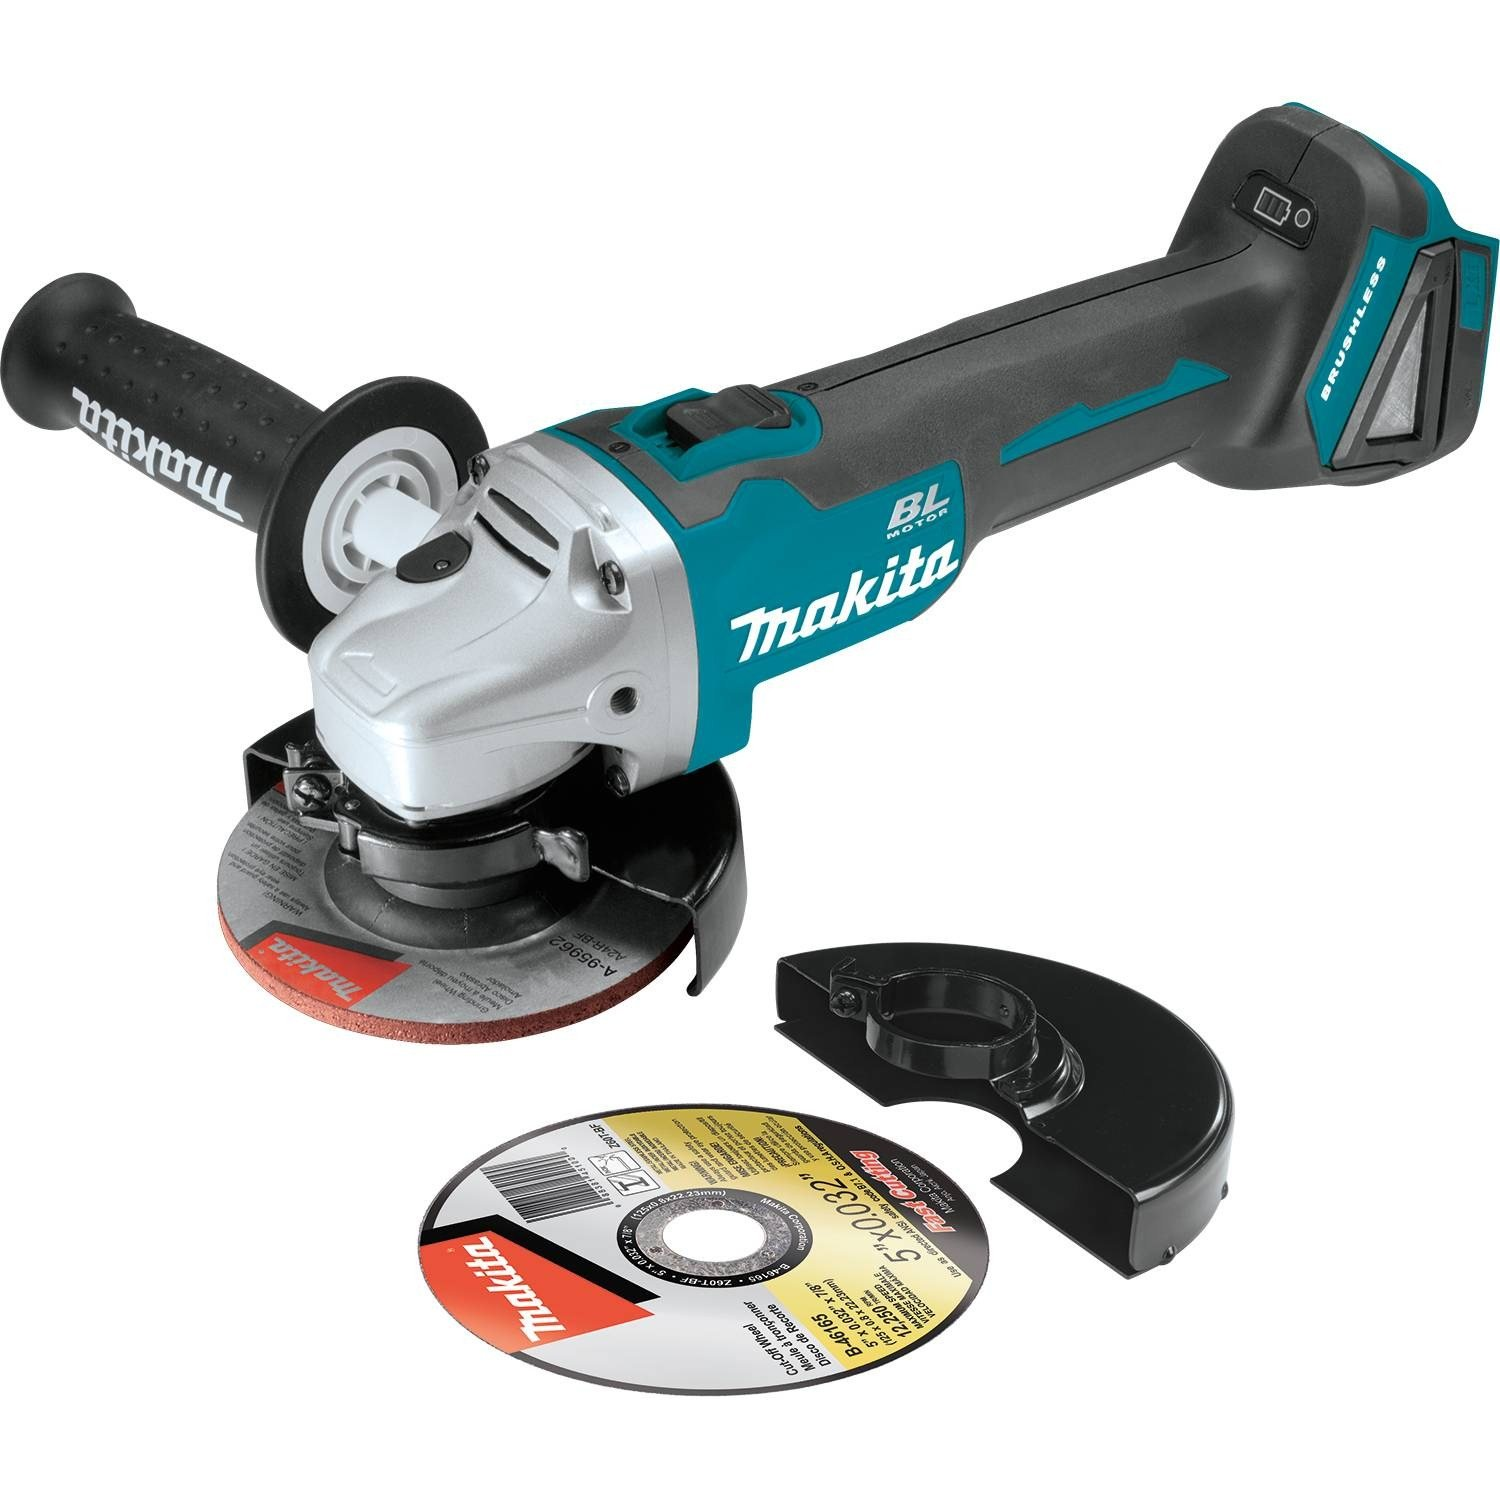 Makita XAG04Z Lithium Ion Brushless Cordless